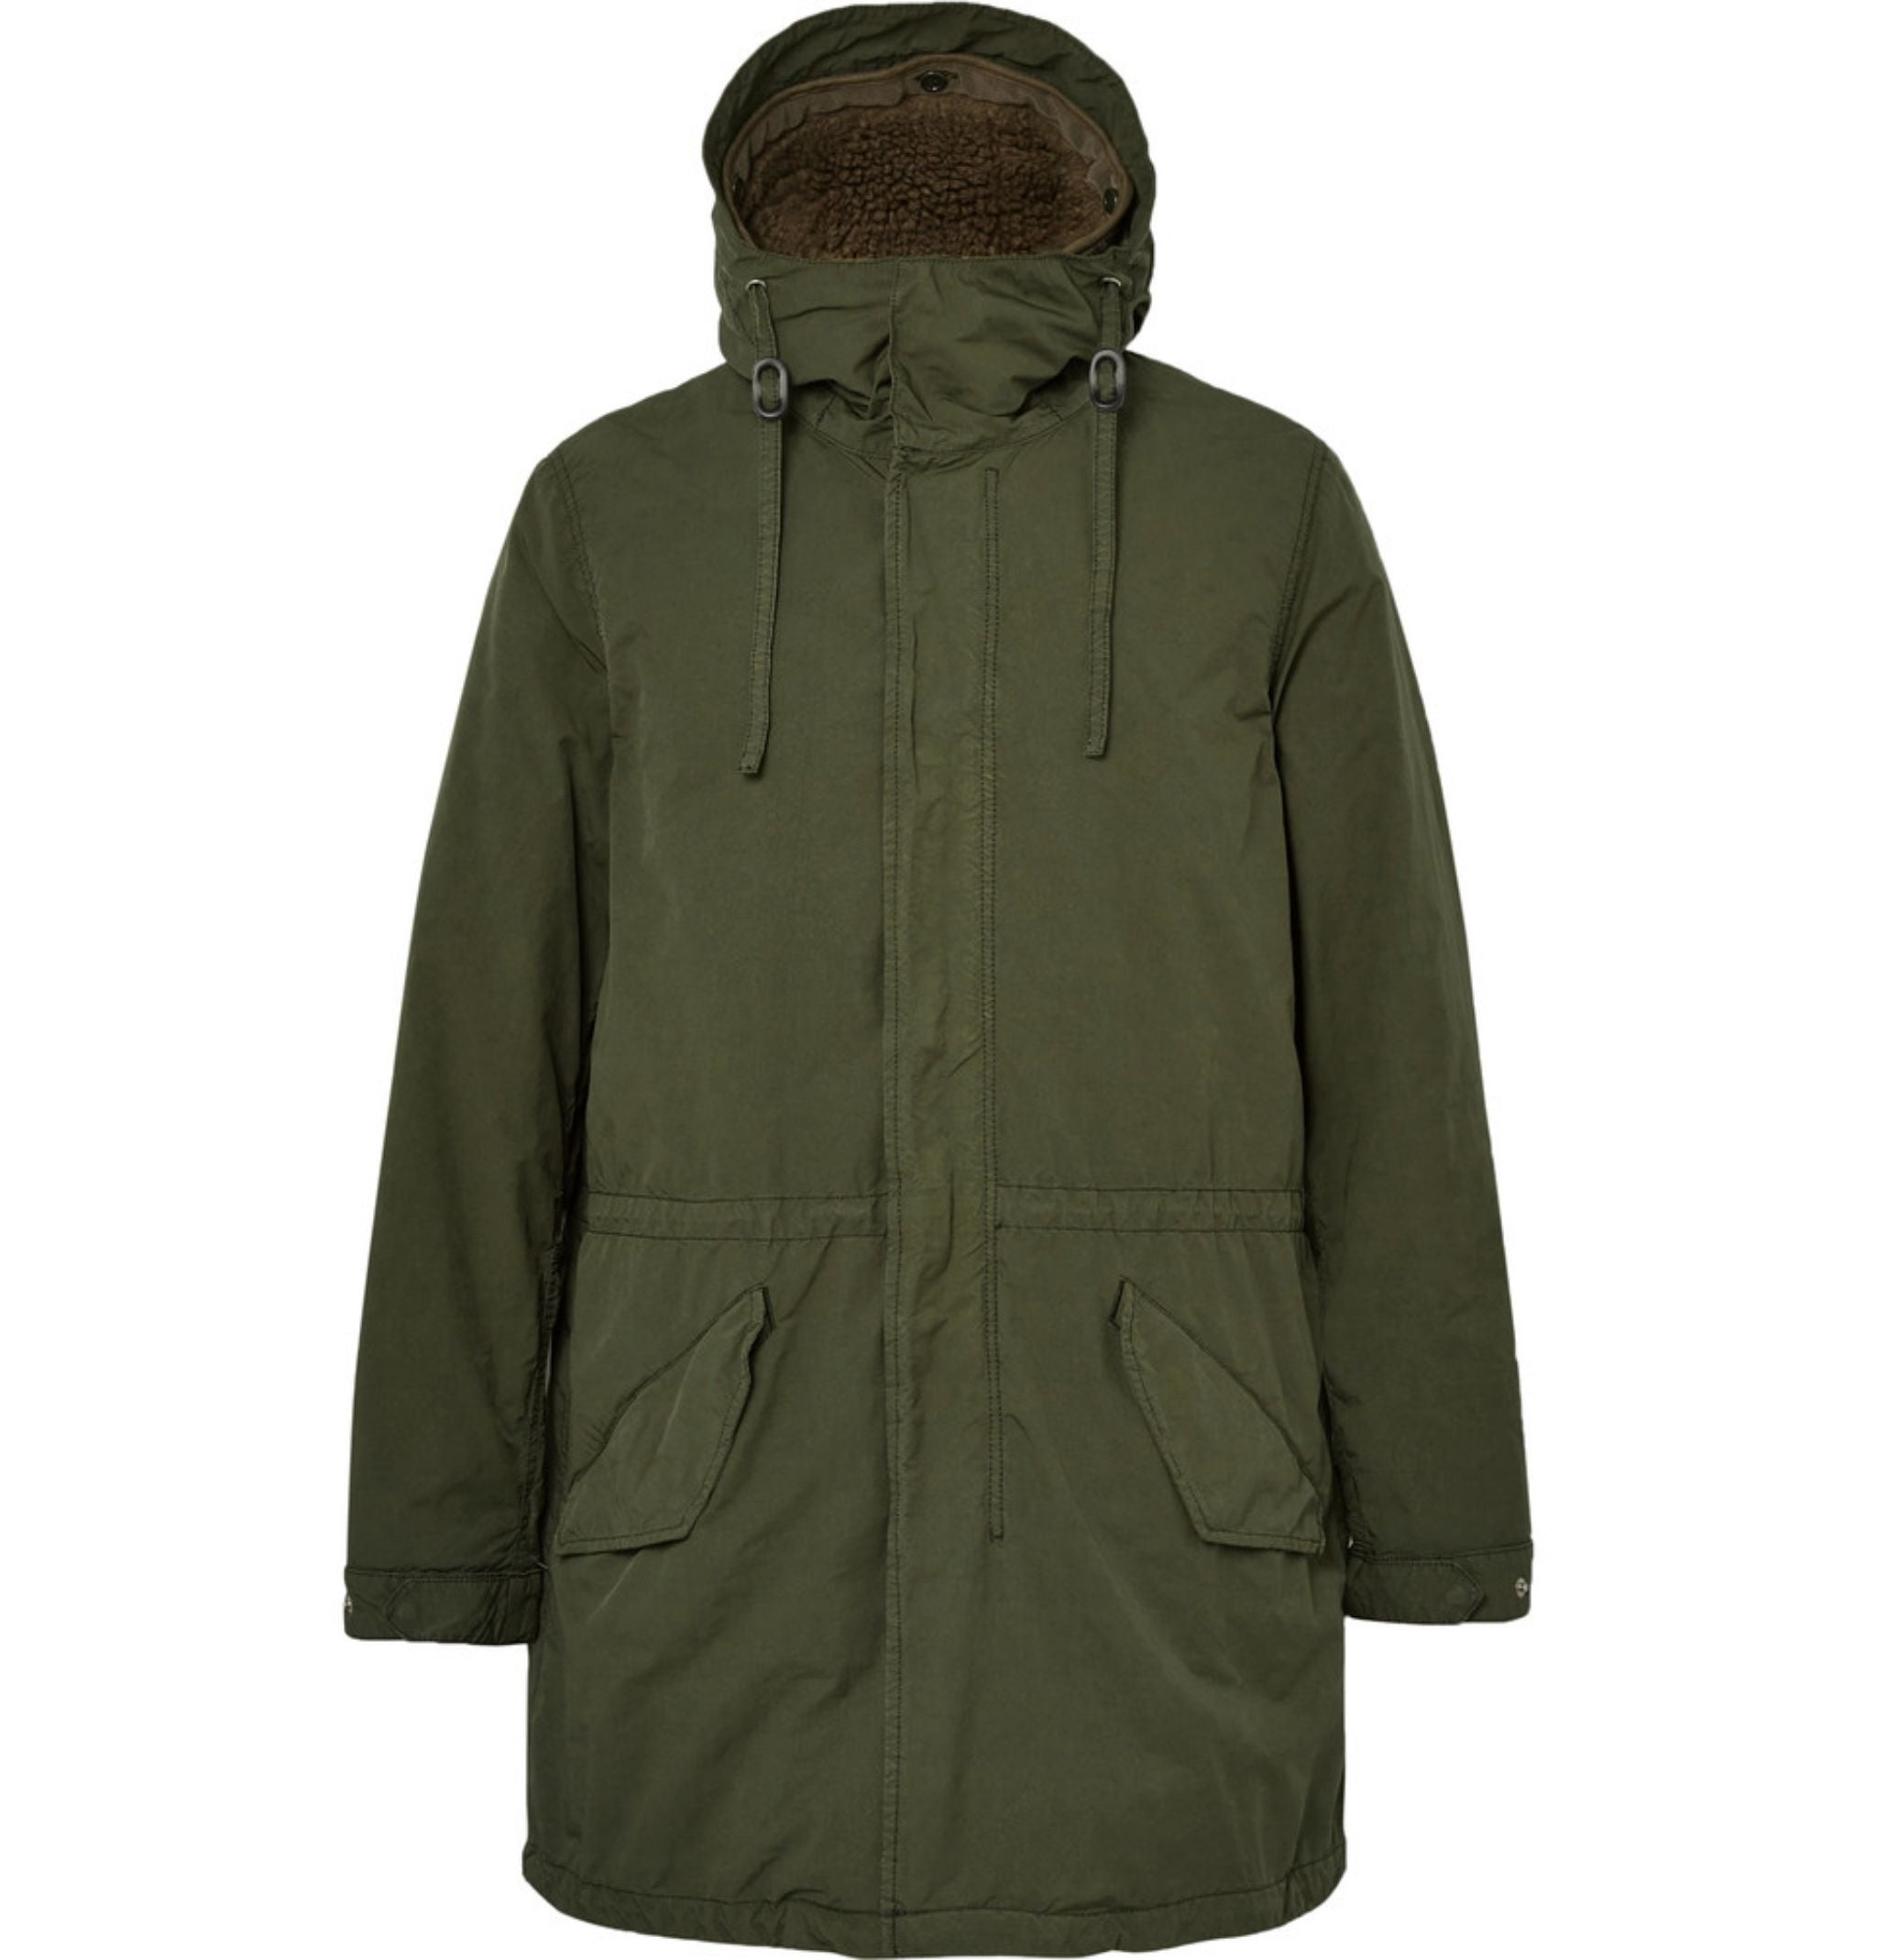 best-overcoat-for-winter-aspesi-olive-green-parka-jacket